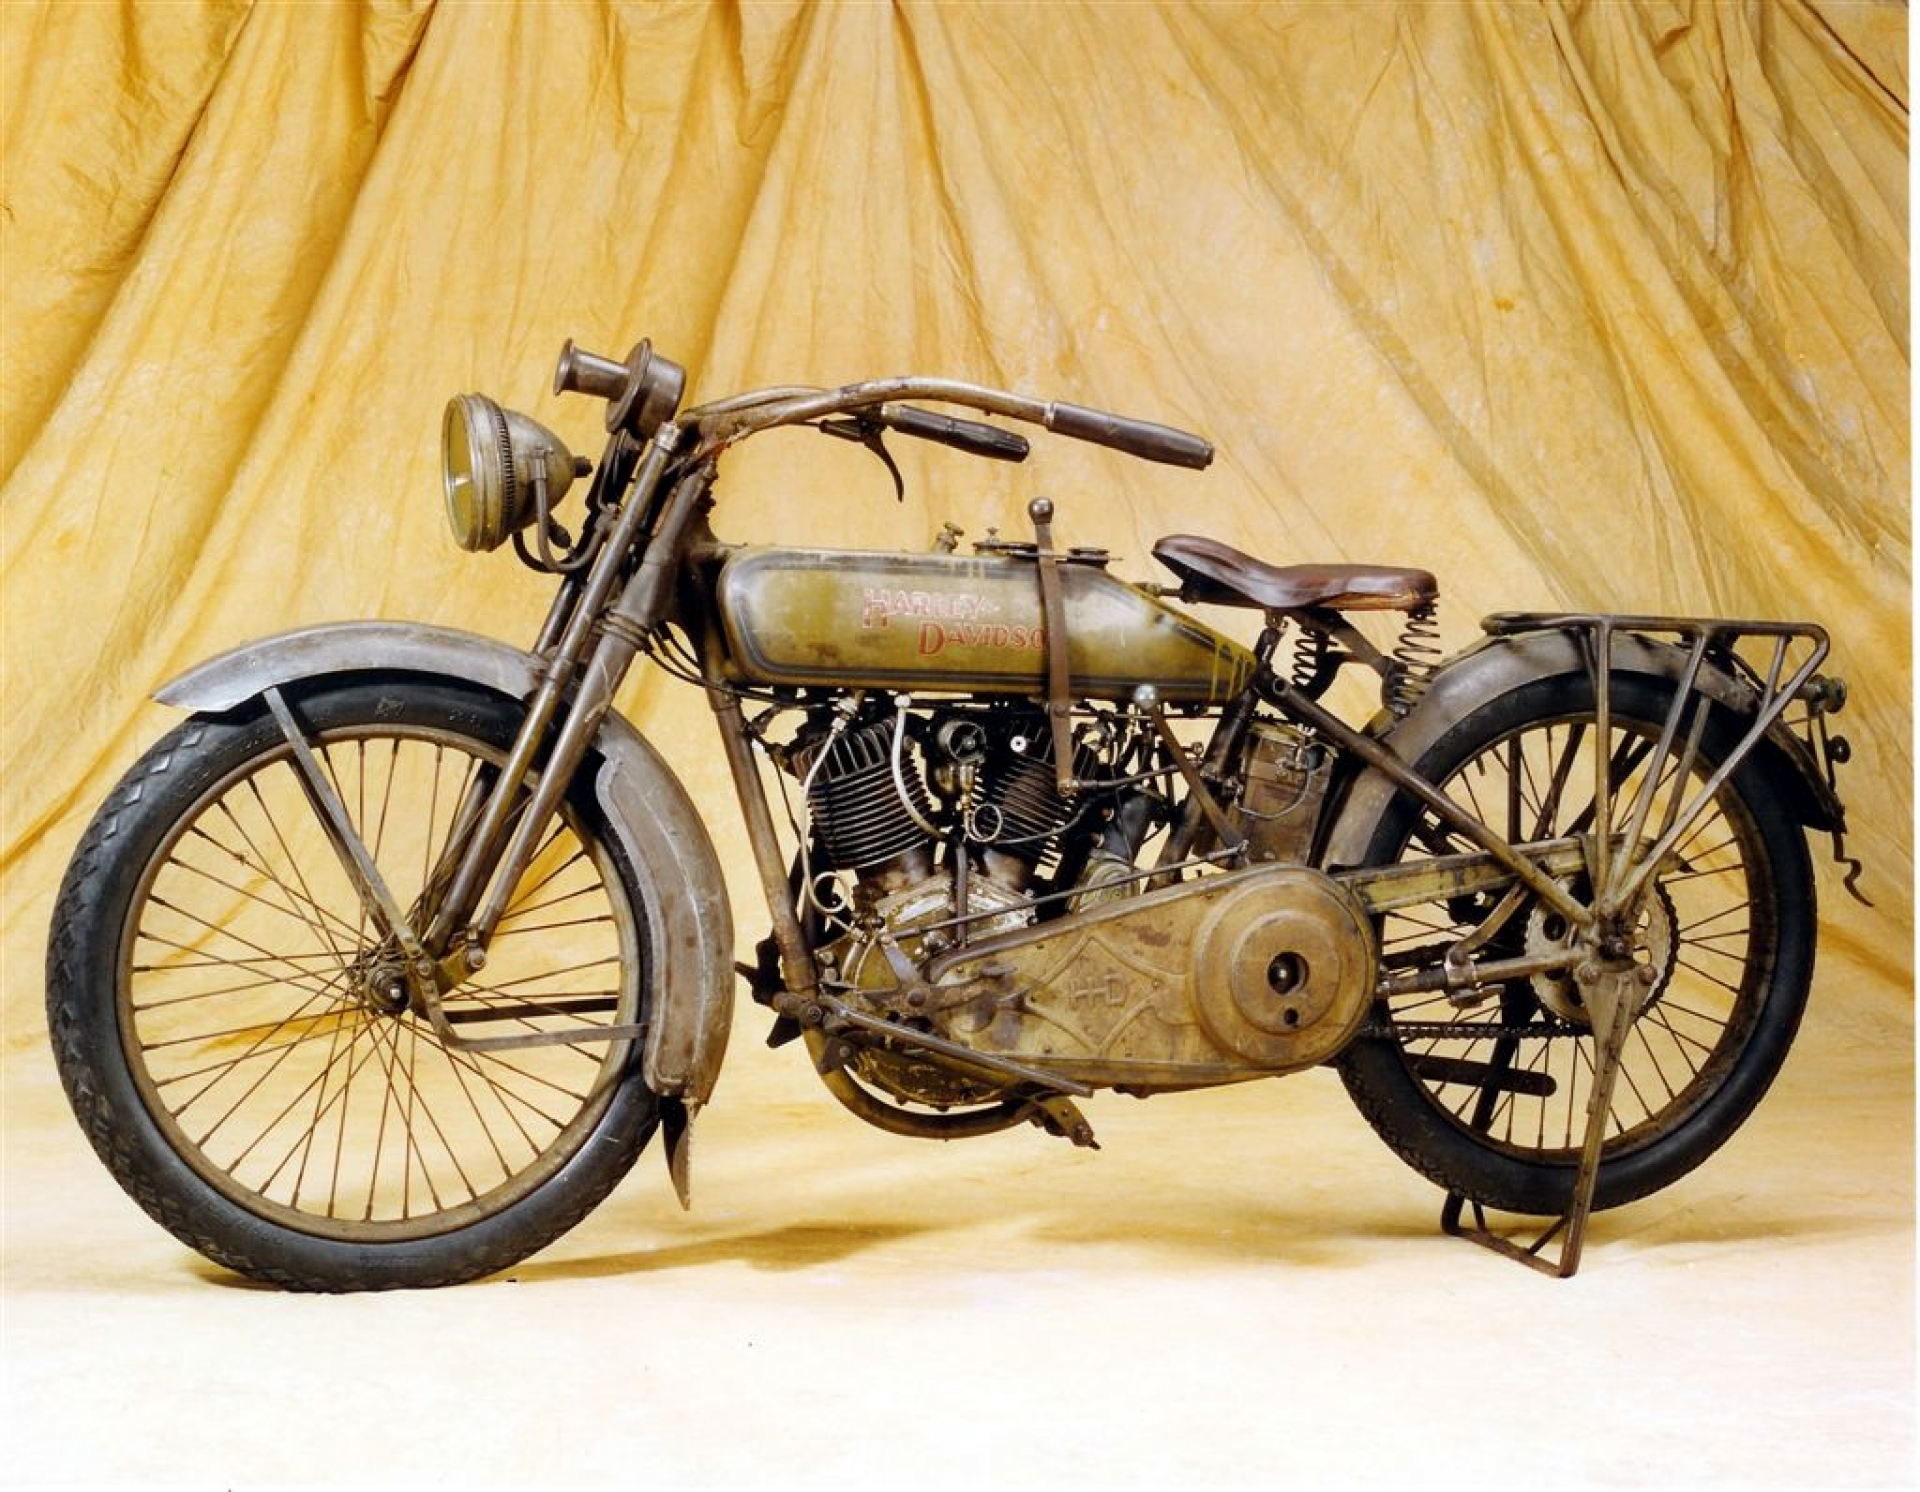 harley davidson com and the global motorcycle industry j paul peter university of wisconsin madison